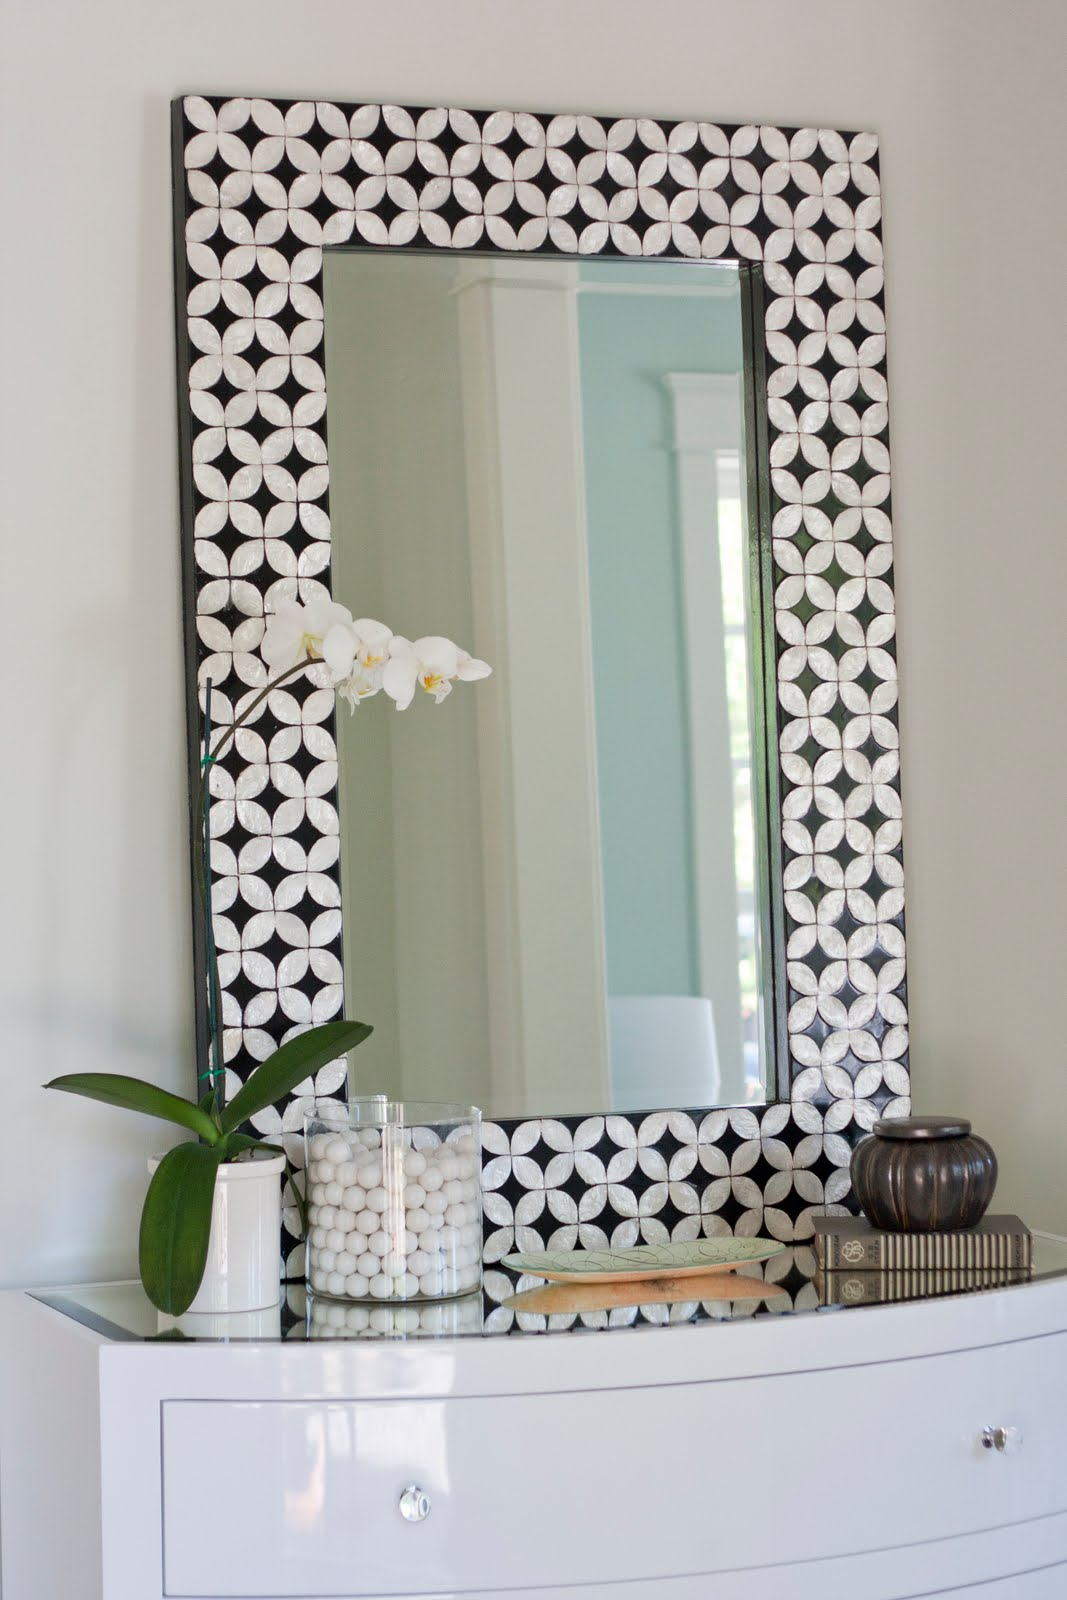 Picket Fence Design Pier 1 Finds Mirrors